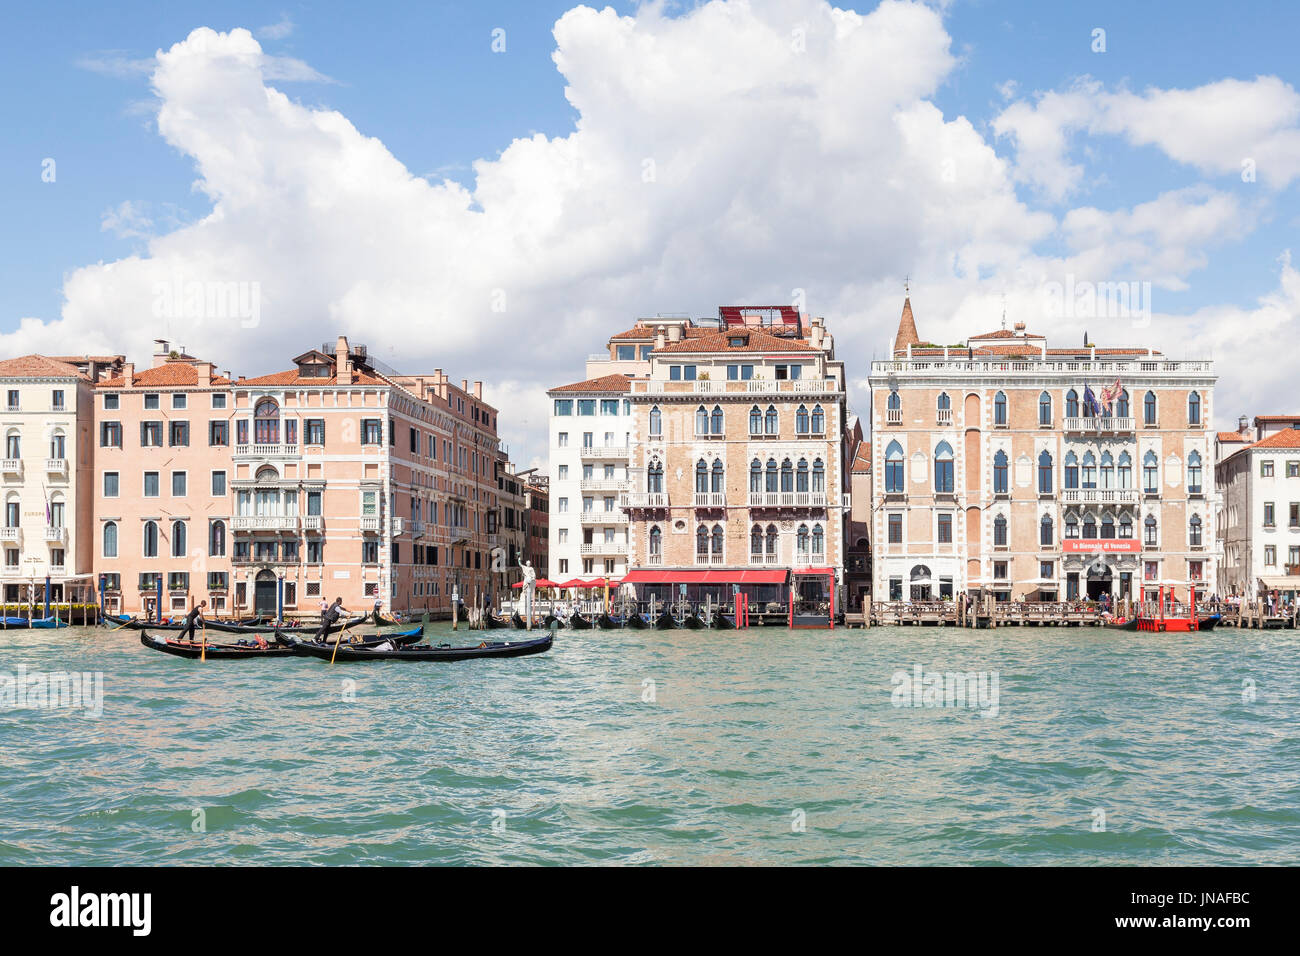 Venice, Veneto, Italy. Gondoliers rowing their gondolas on the Grand Canal past the Hotel Bauer Palazzo and  the Biennale  in the sestiere San Marco,  - Stock Image